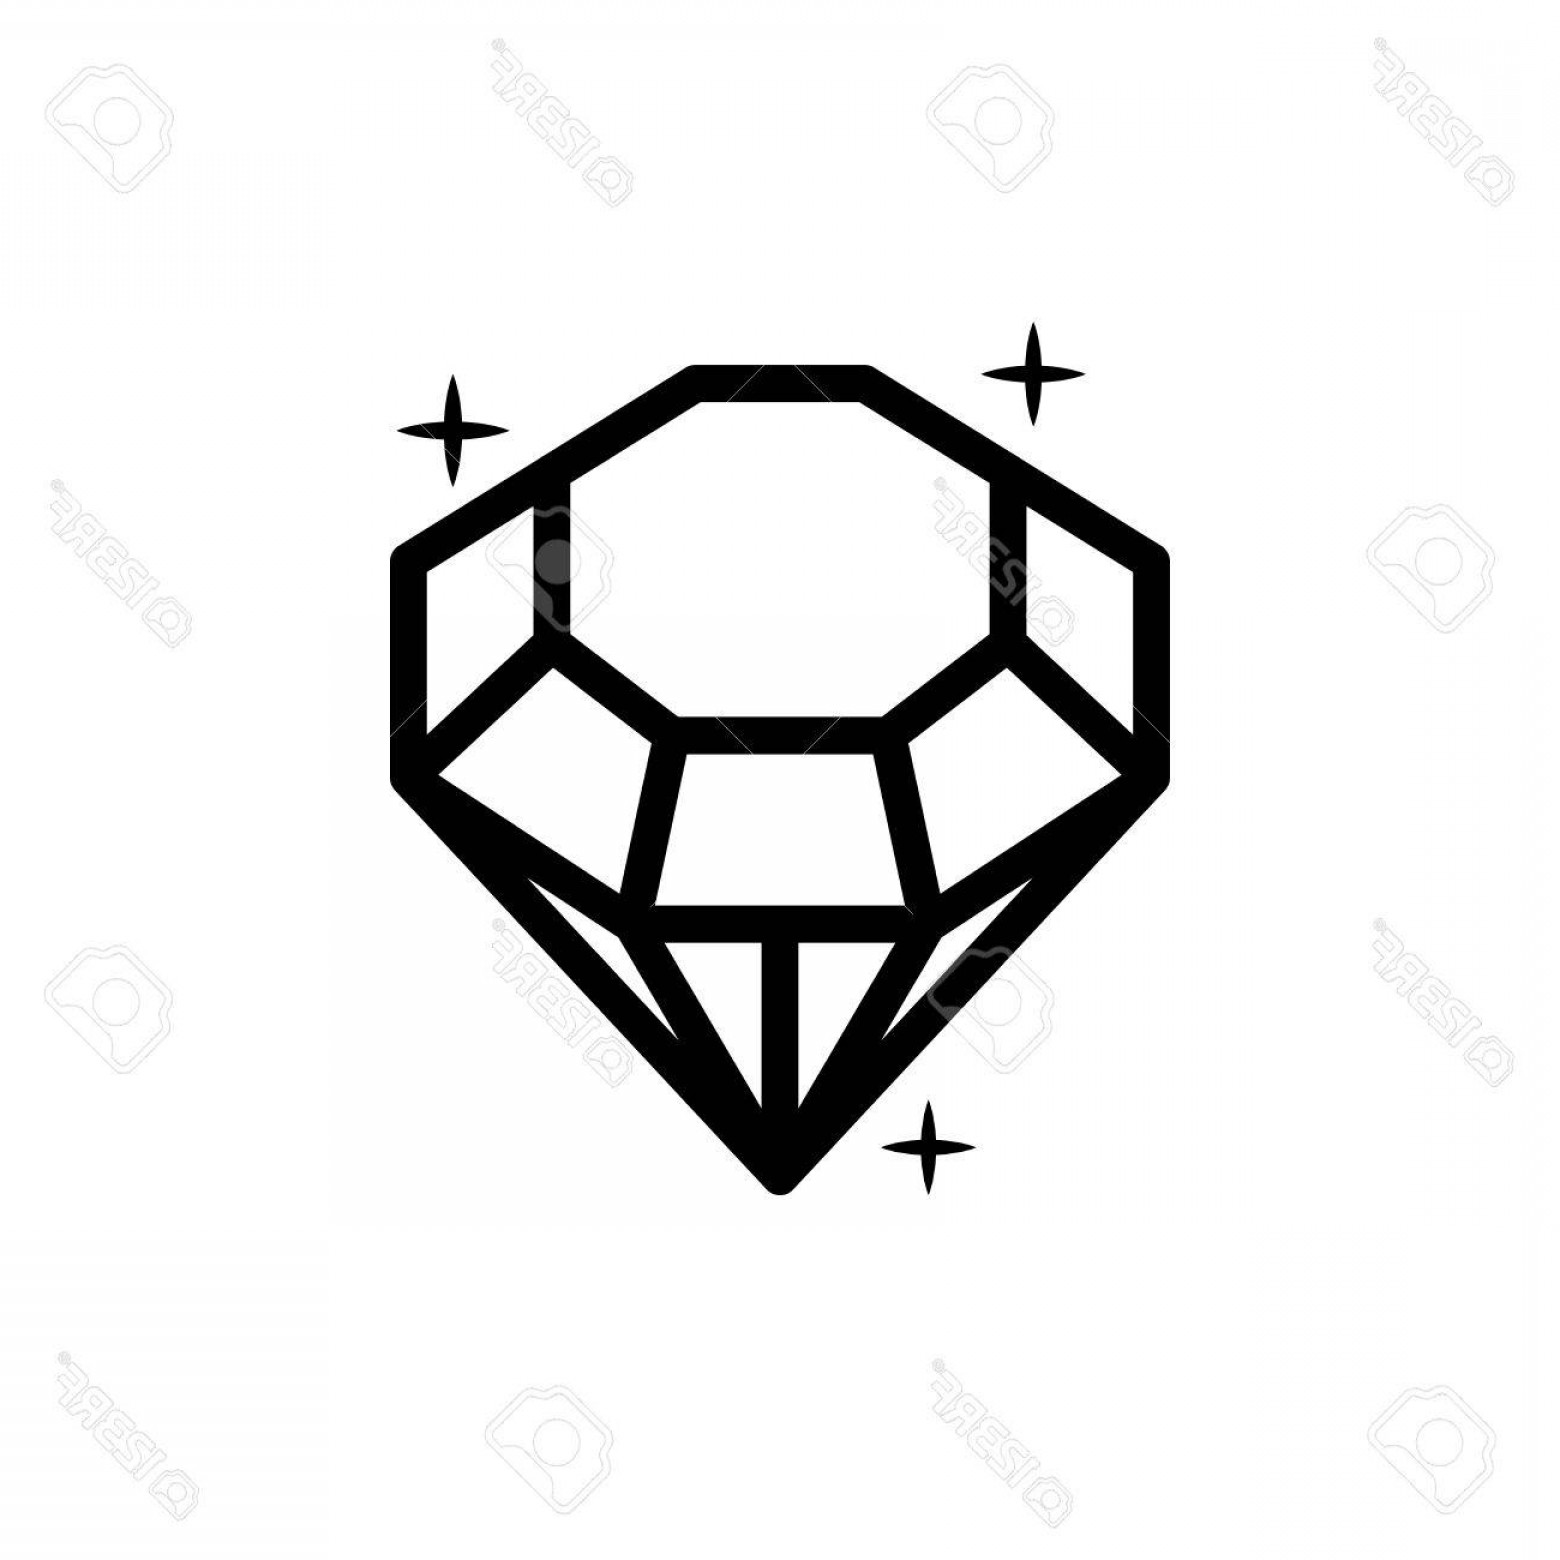 Black Diamond Vector Clip Art: Photostock Vector Diamond Icon Vector Illustration Shiny Crystal Sign Brilliant Stone Black Stroke Isolated On White B